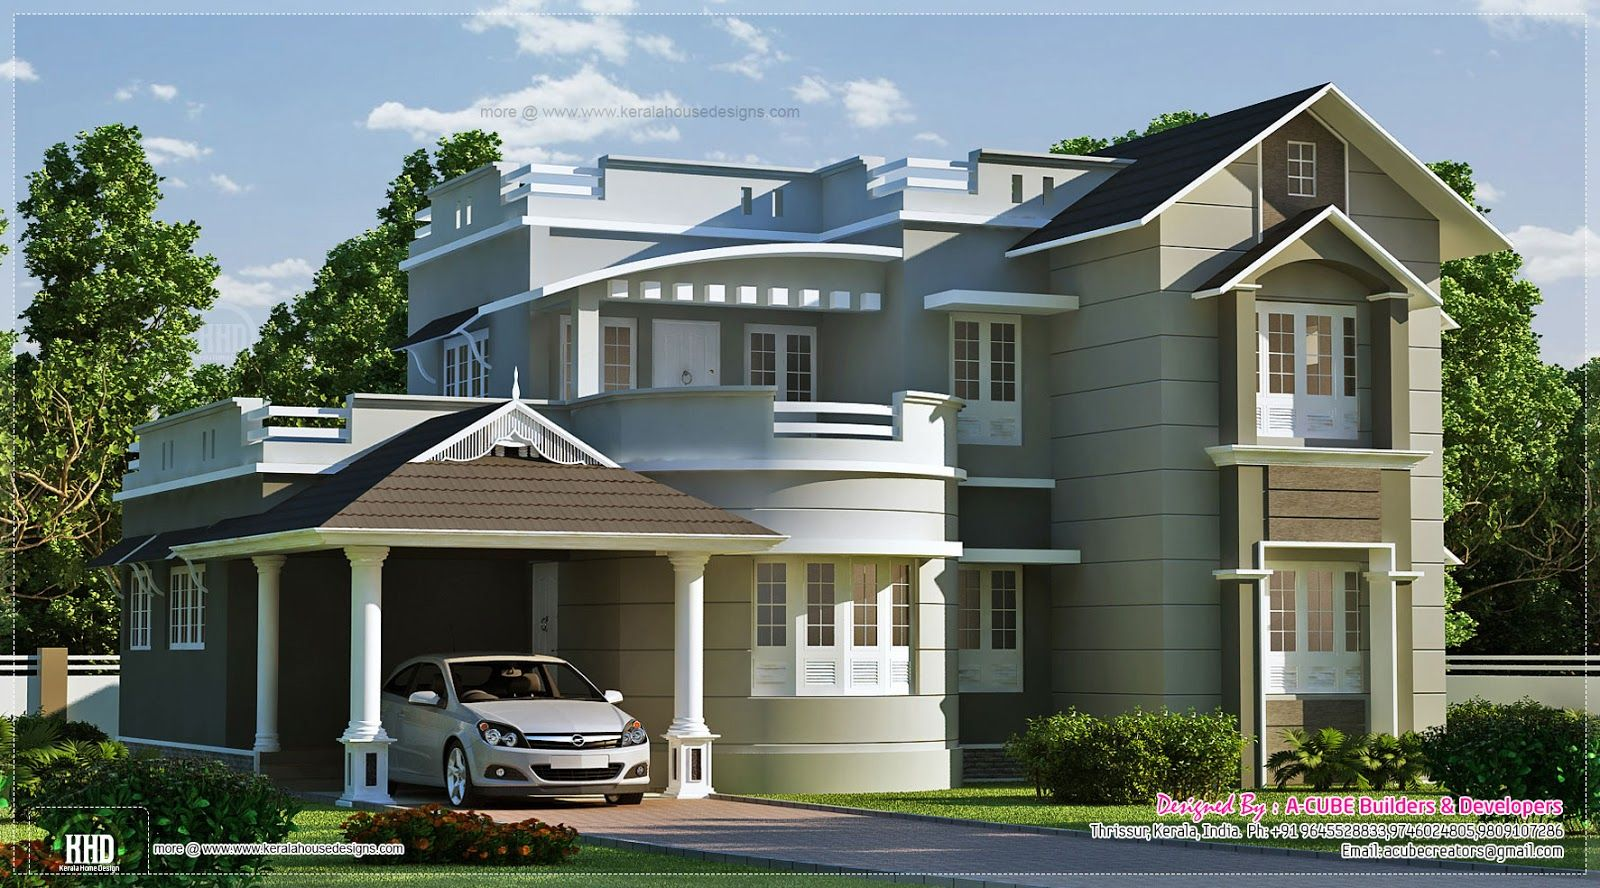 Awesome new house plans also dan pinterest design rh